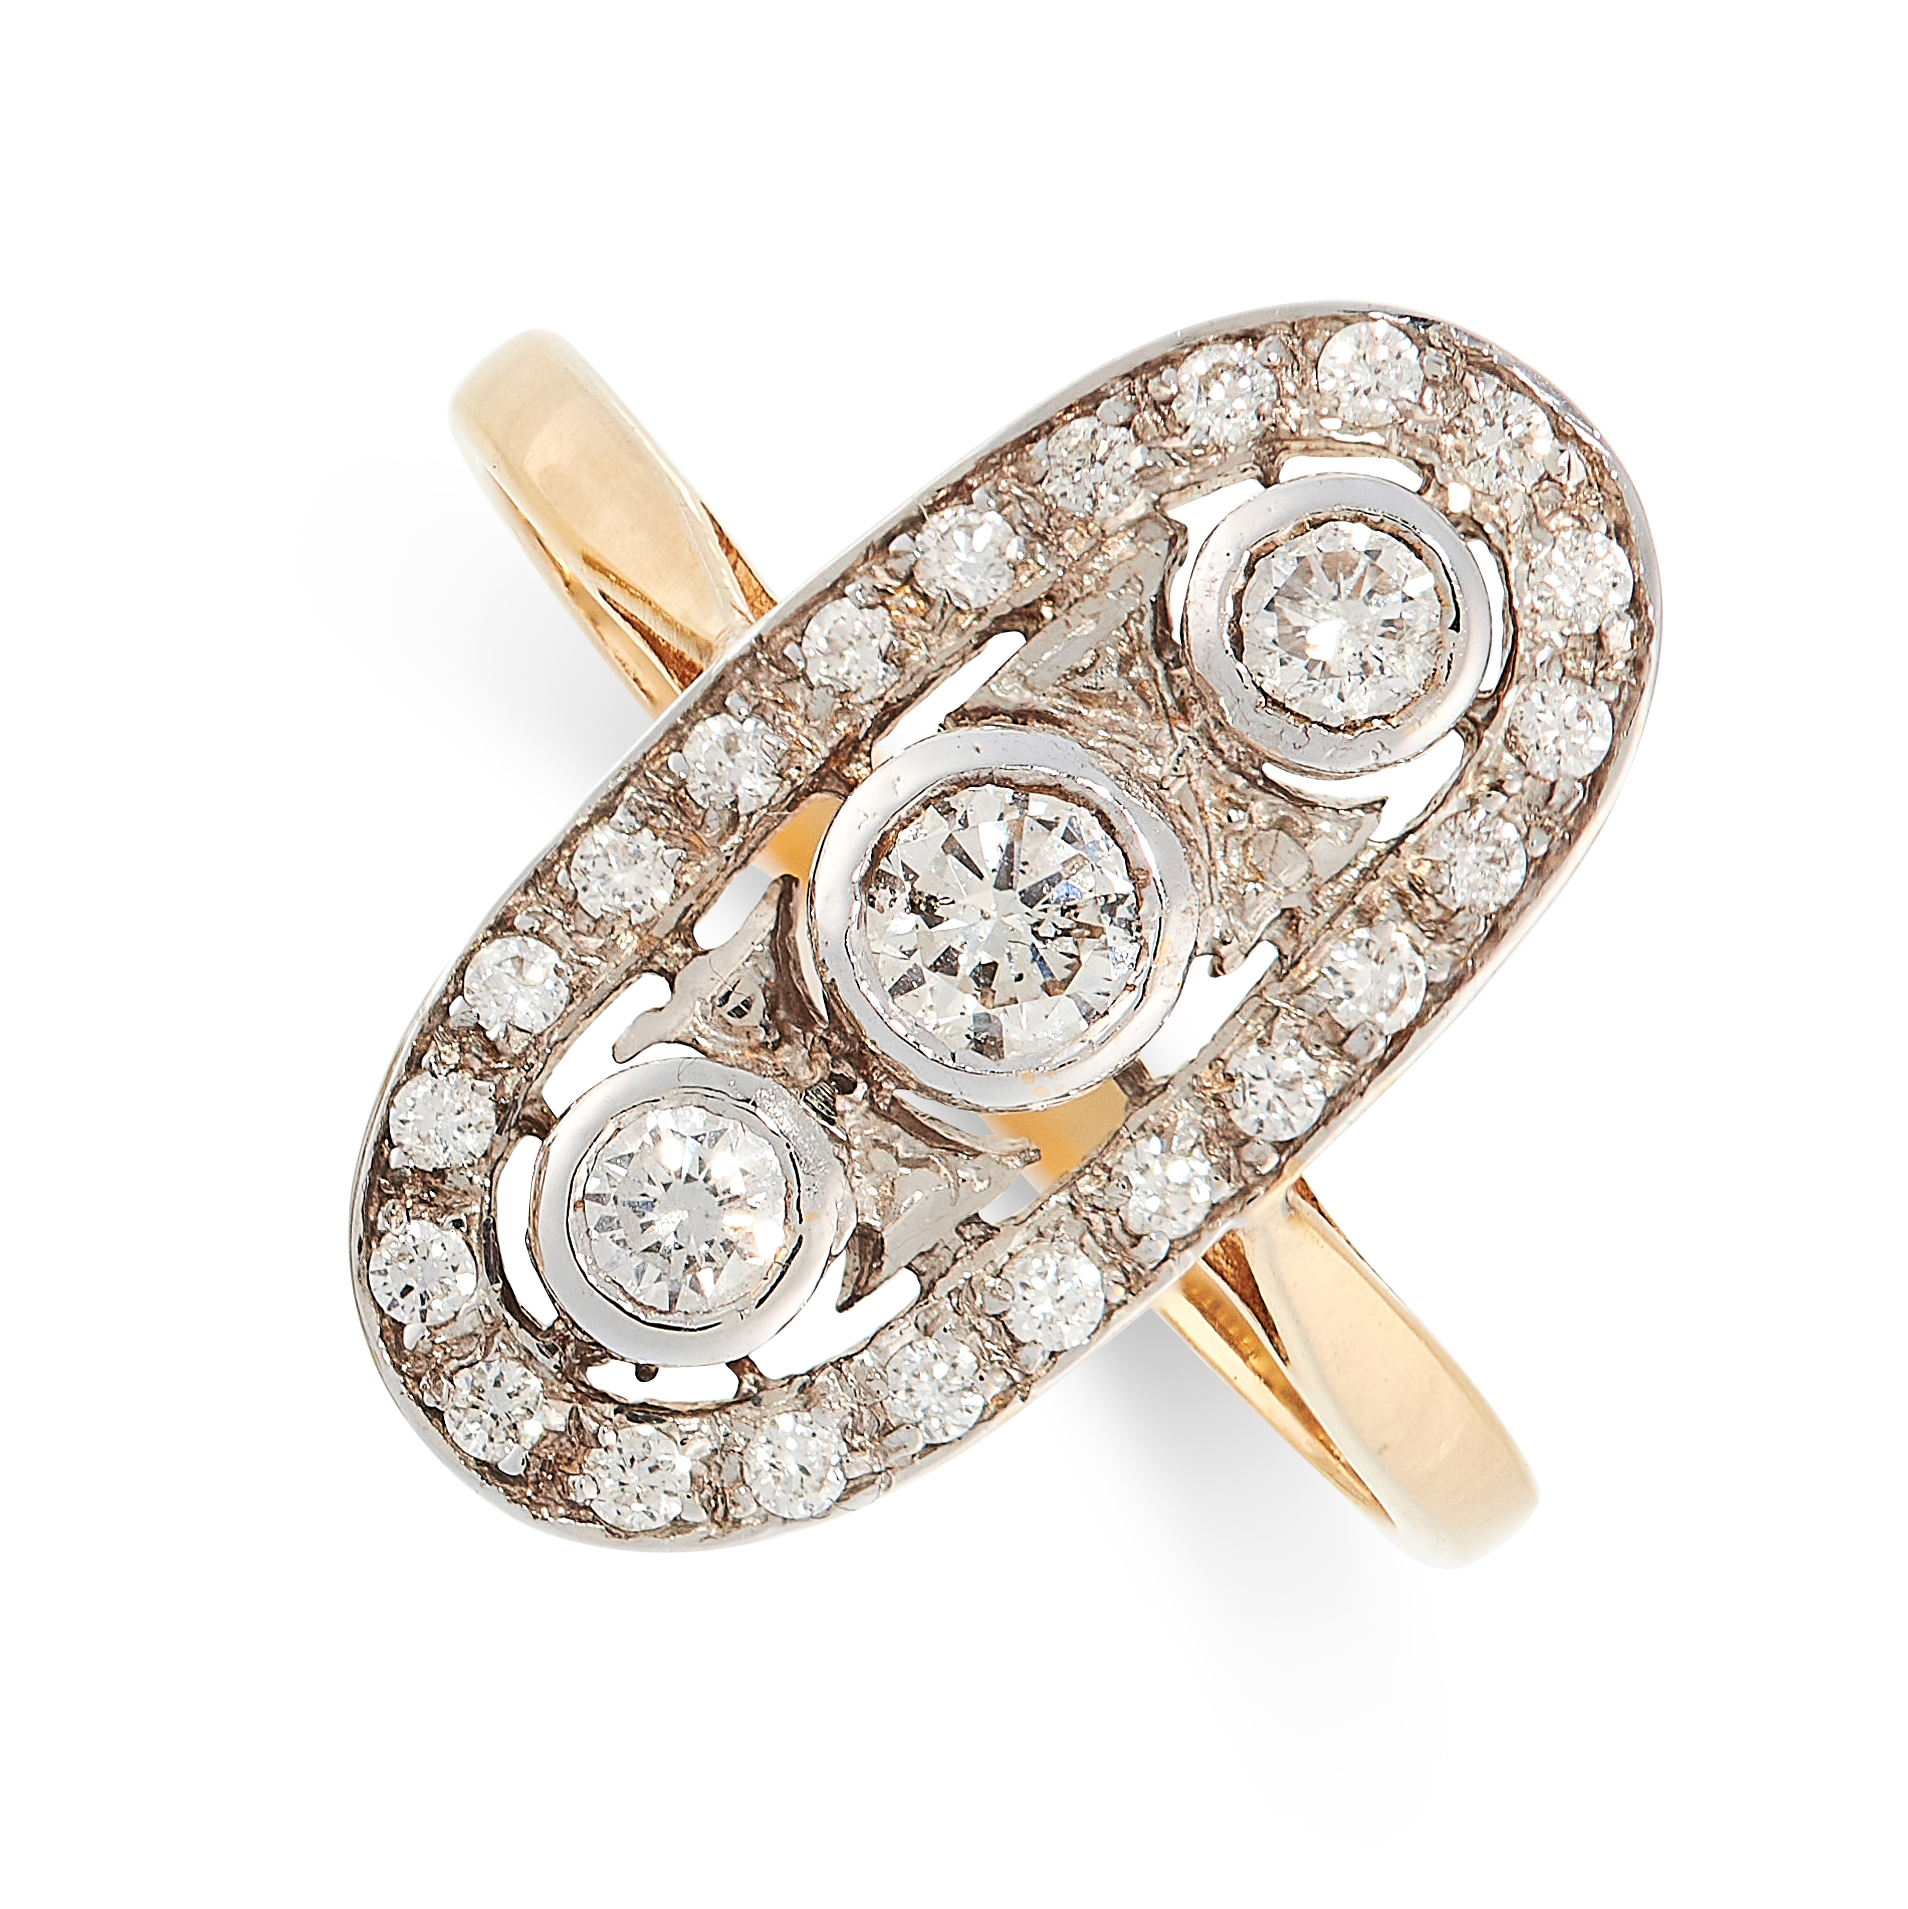 DIAMOND DRESS RING in 18ct yellow gold, set with three principle diamonds totalling 0.24 carats in